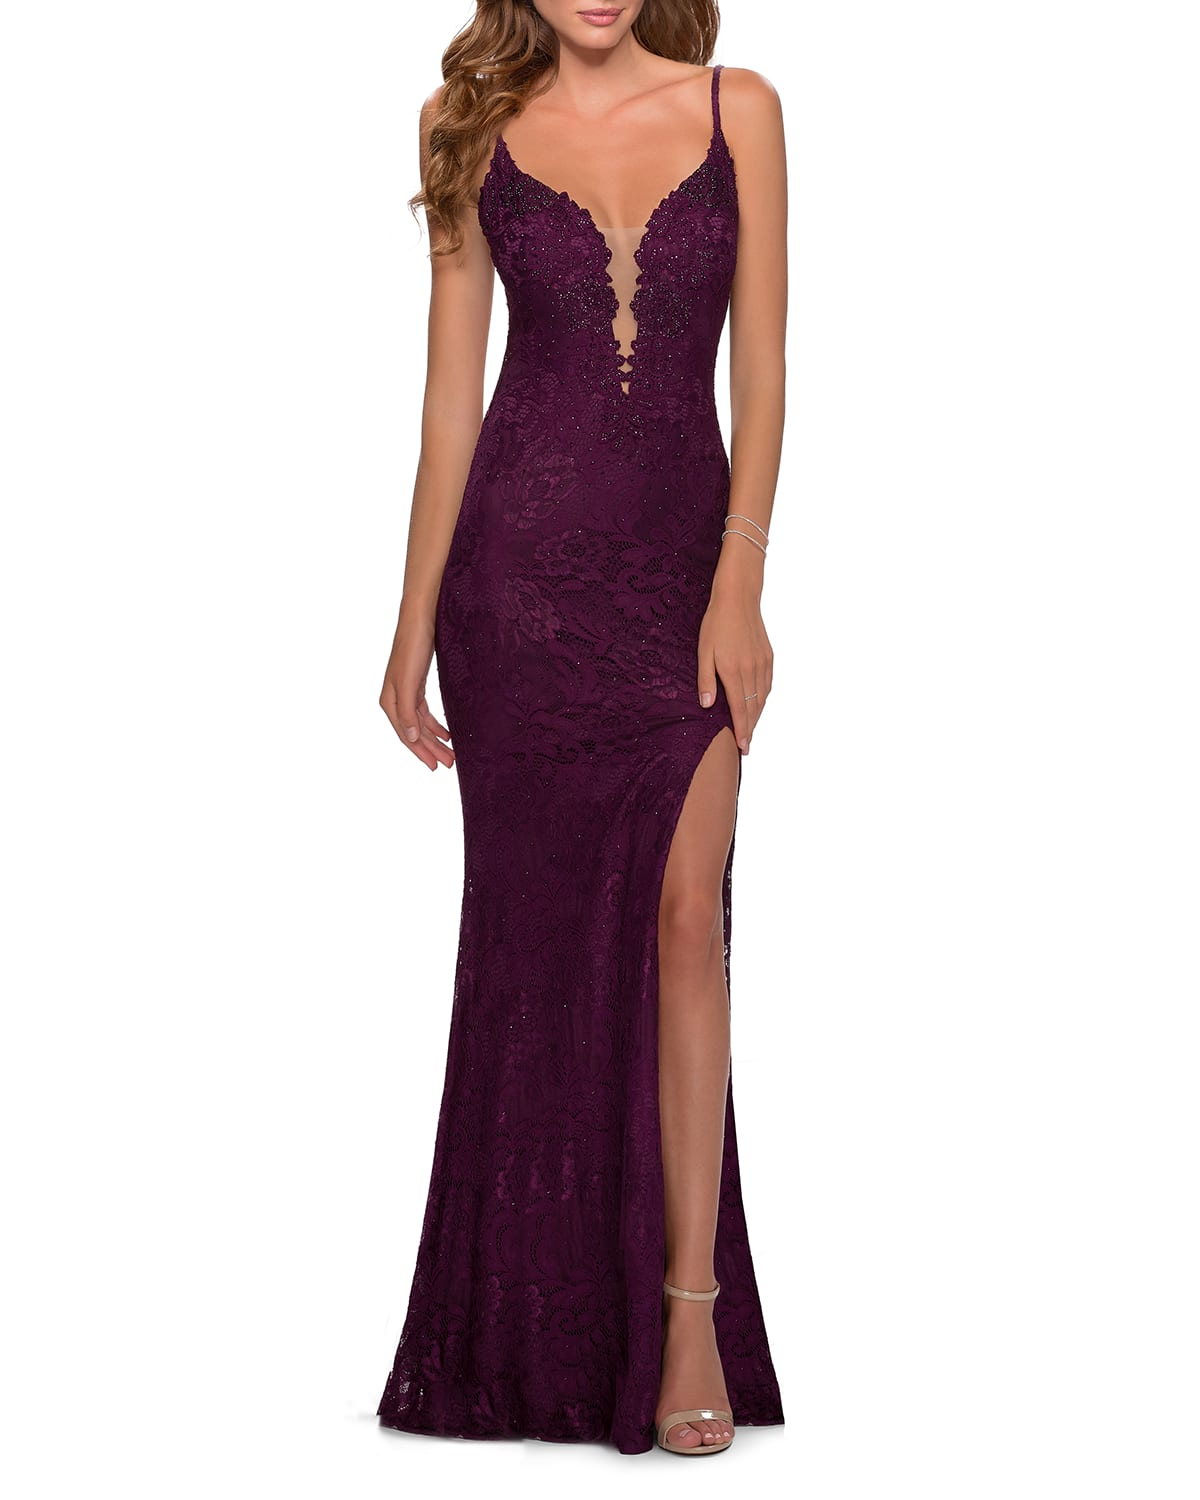 Plunging Floral Lace Gown w/ Thigh Slit